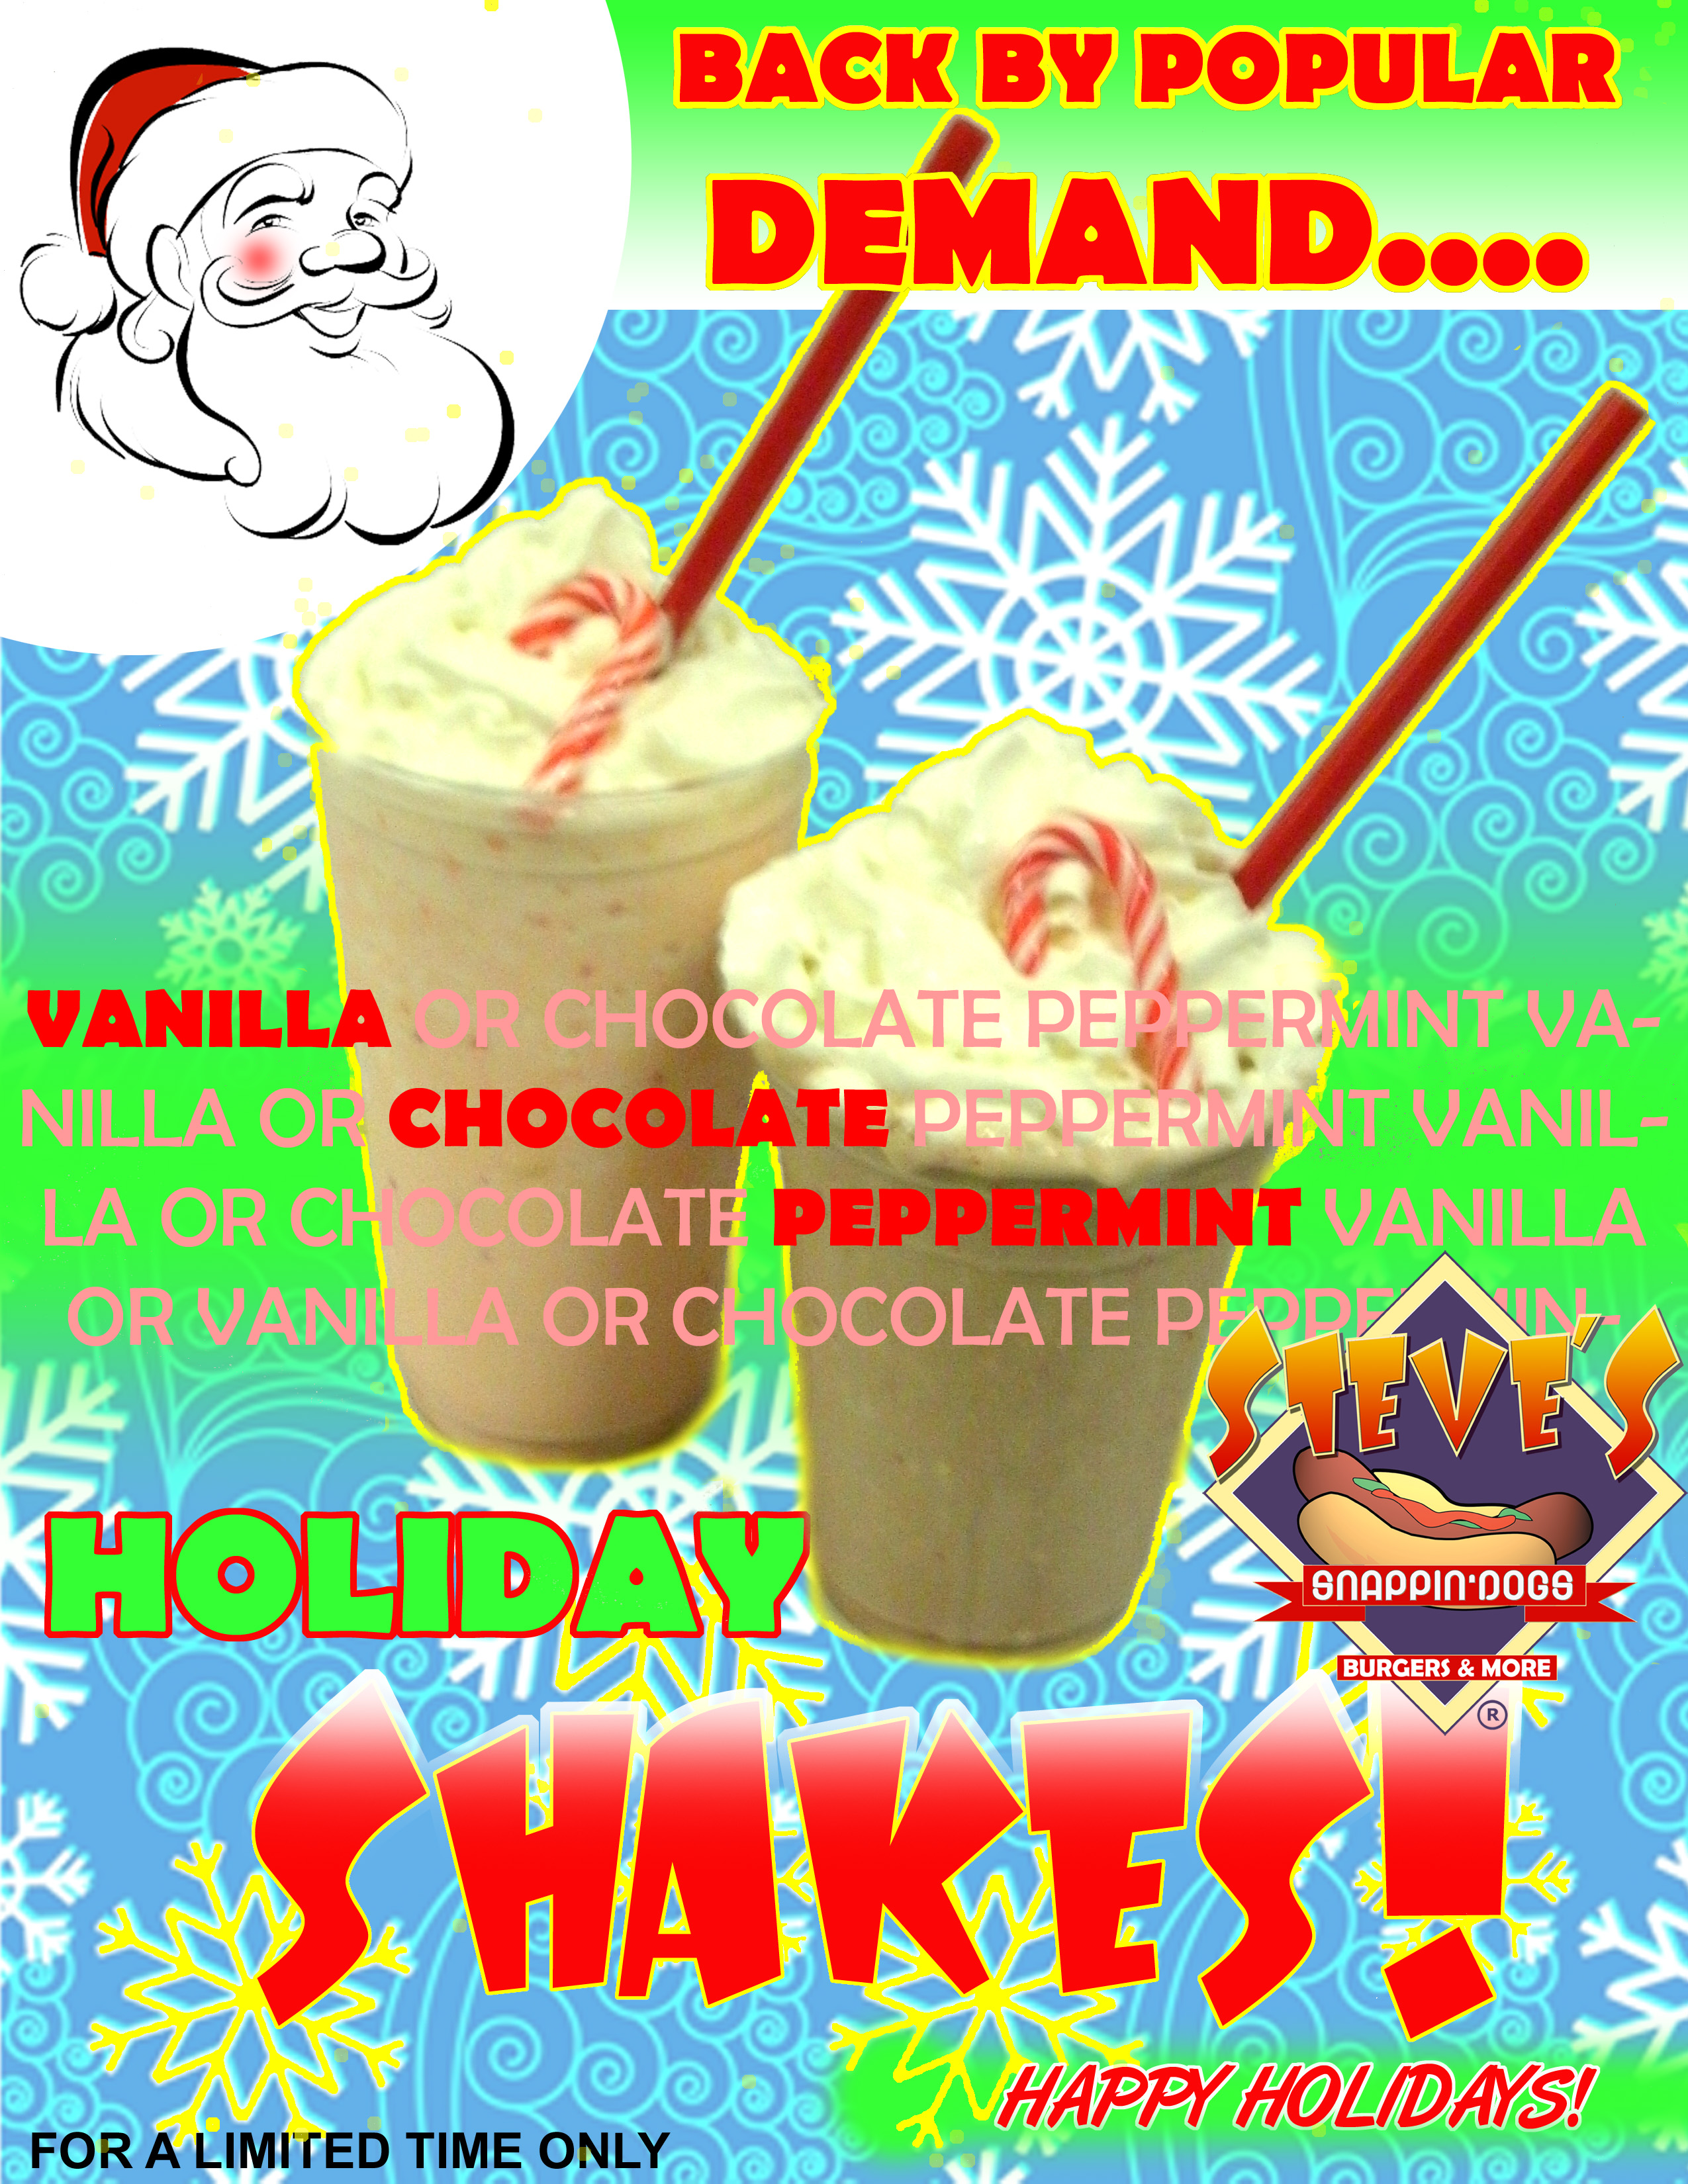 This Month's Featured Shake: Chocolate or Vanilla Peppermint